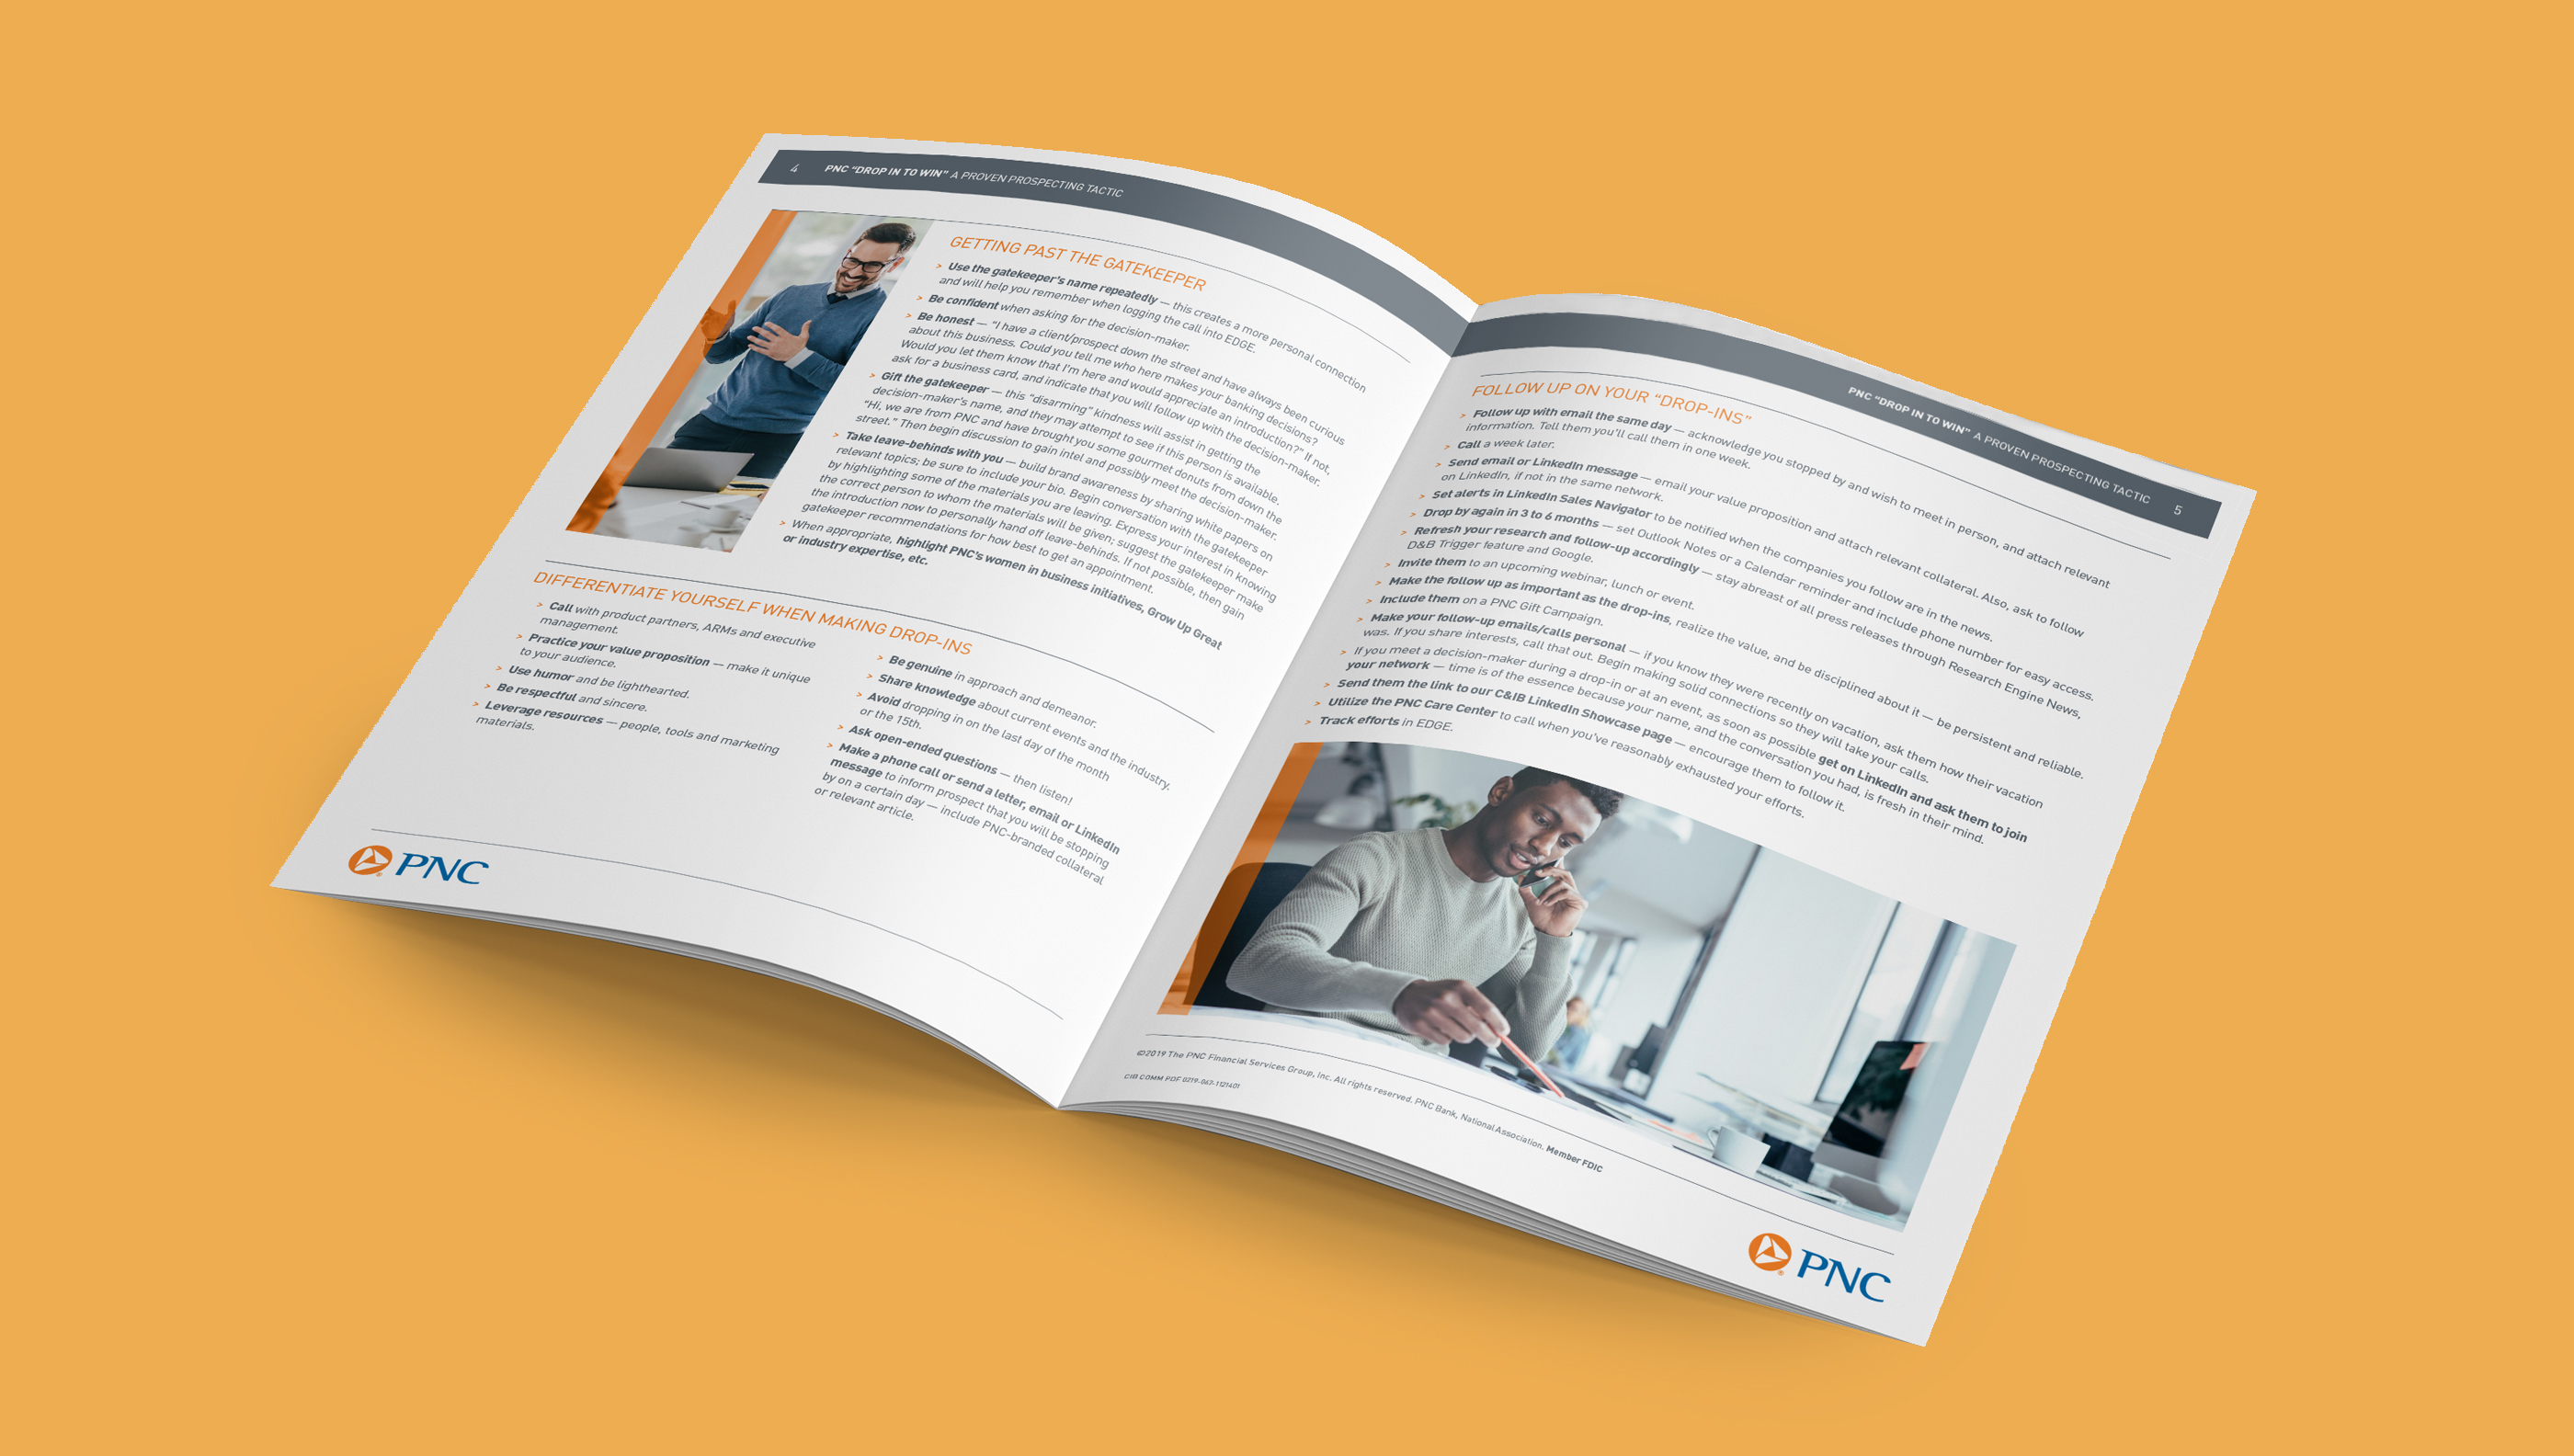 A mockup of a brochure with the pages open over a mustard background. The spread features white pages with dark gray header bars, dark gray body copy, and imagery of business people.